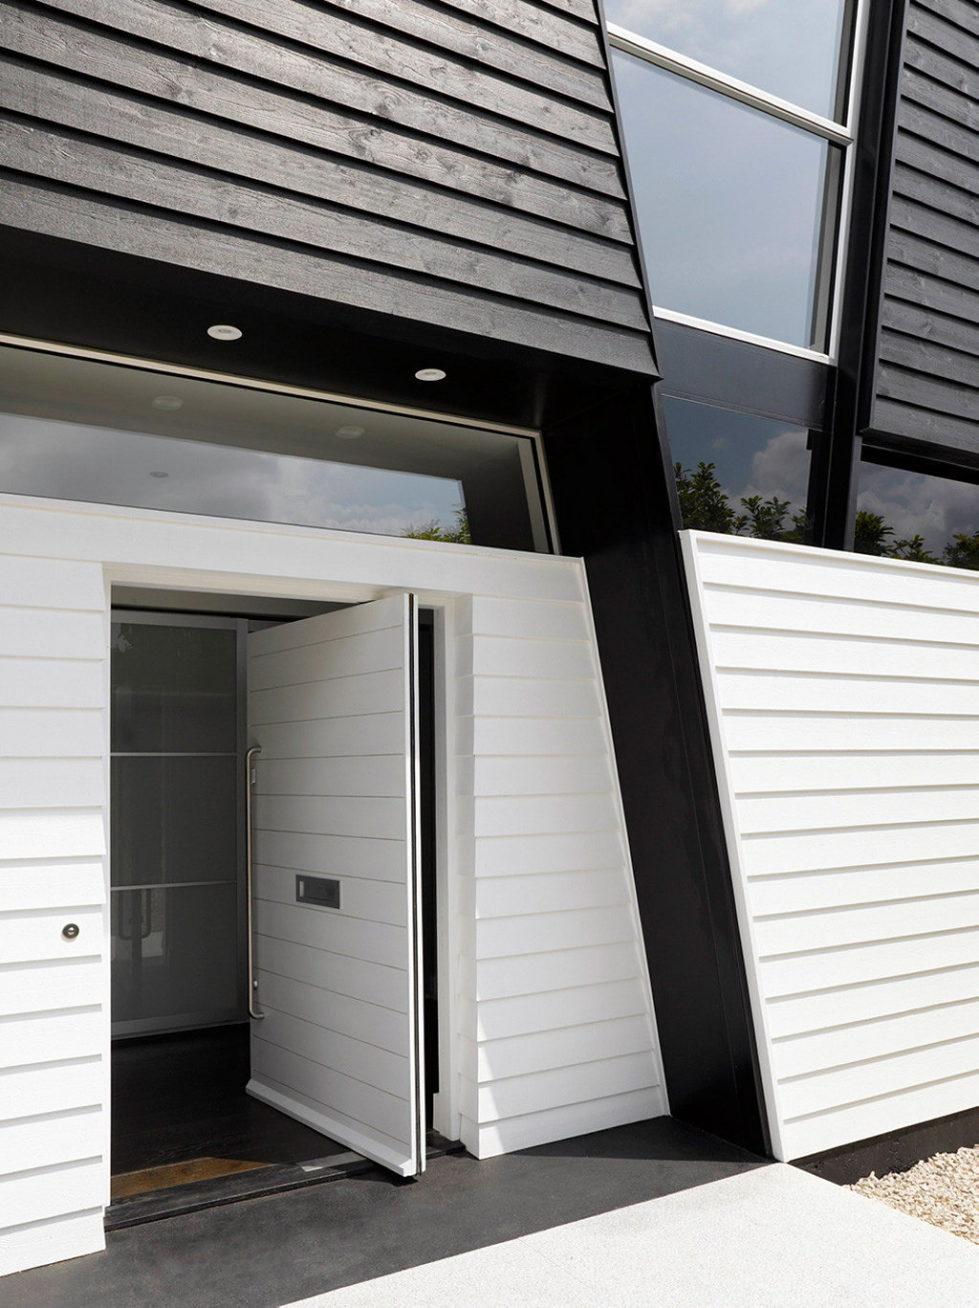 Trish House Yalding A Modernism-Styled Project From Matthew Heywood Limited, Great Britain 7